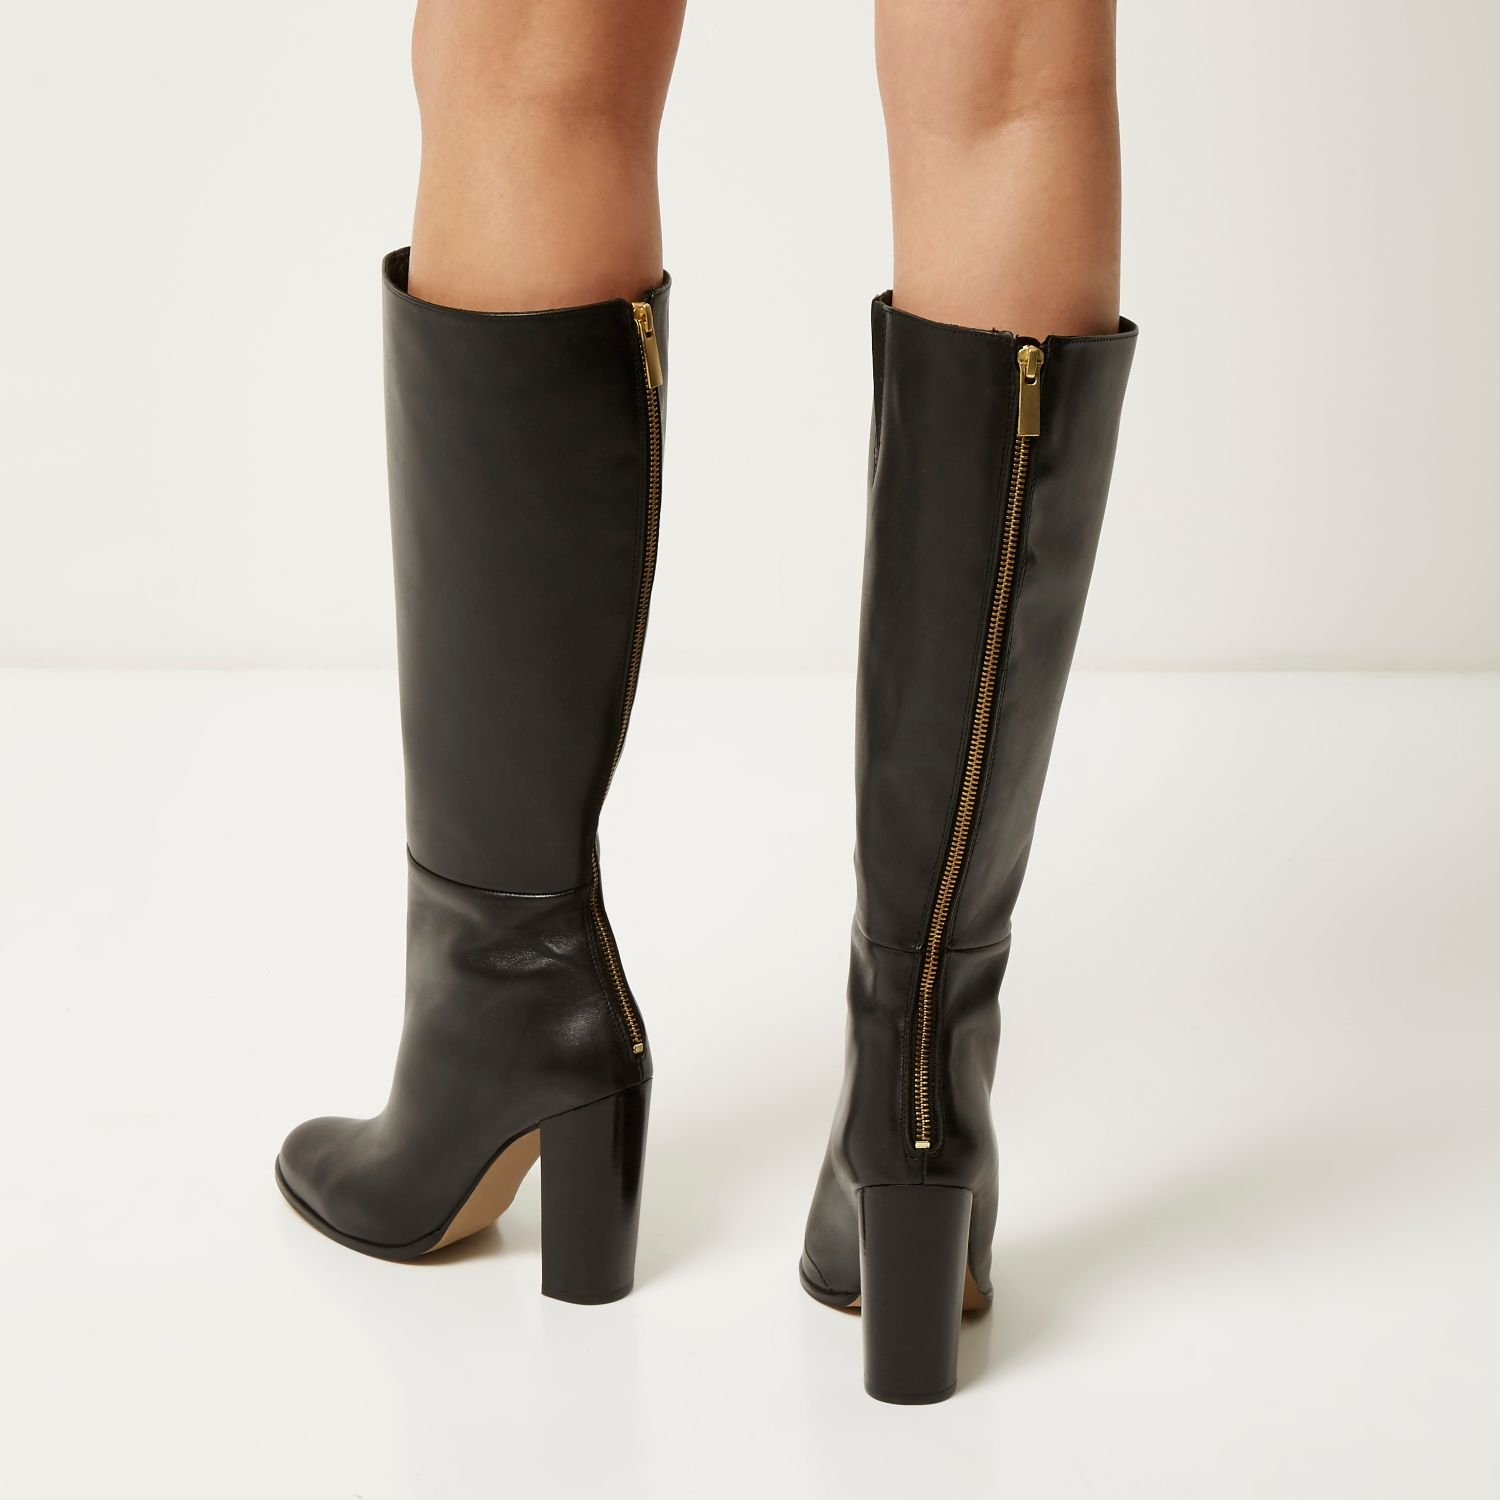 27aac6c02f4 River Island Black Leather Knee High Heeled Boots in Black - Lyst